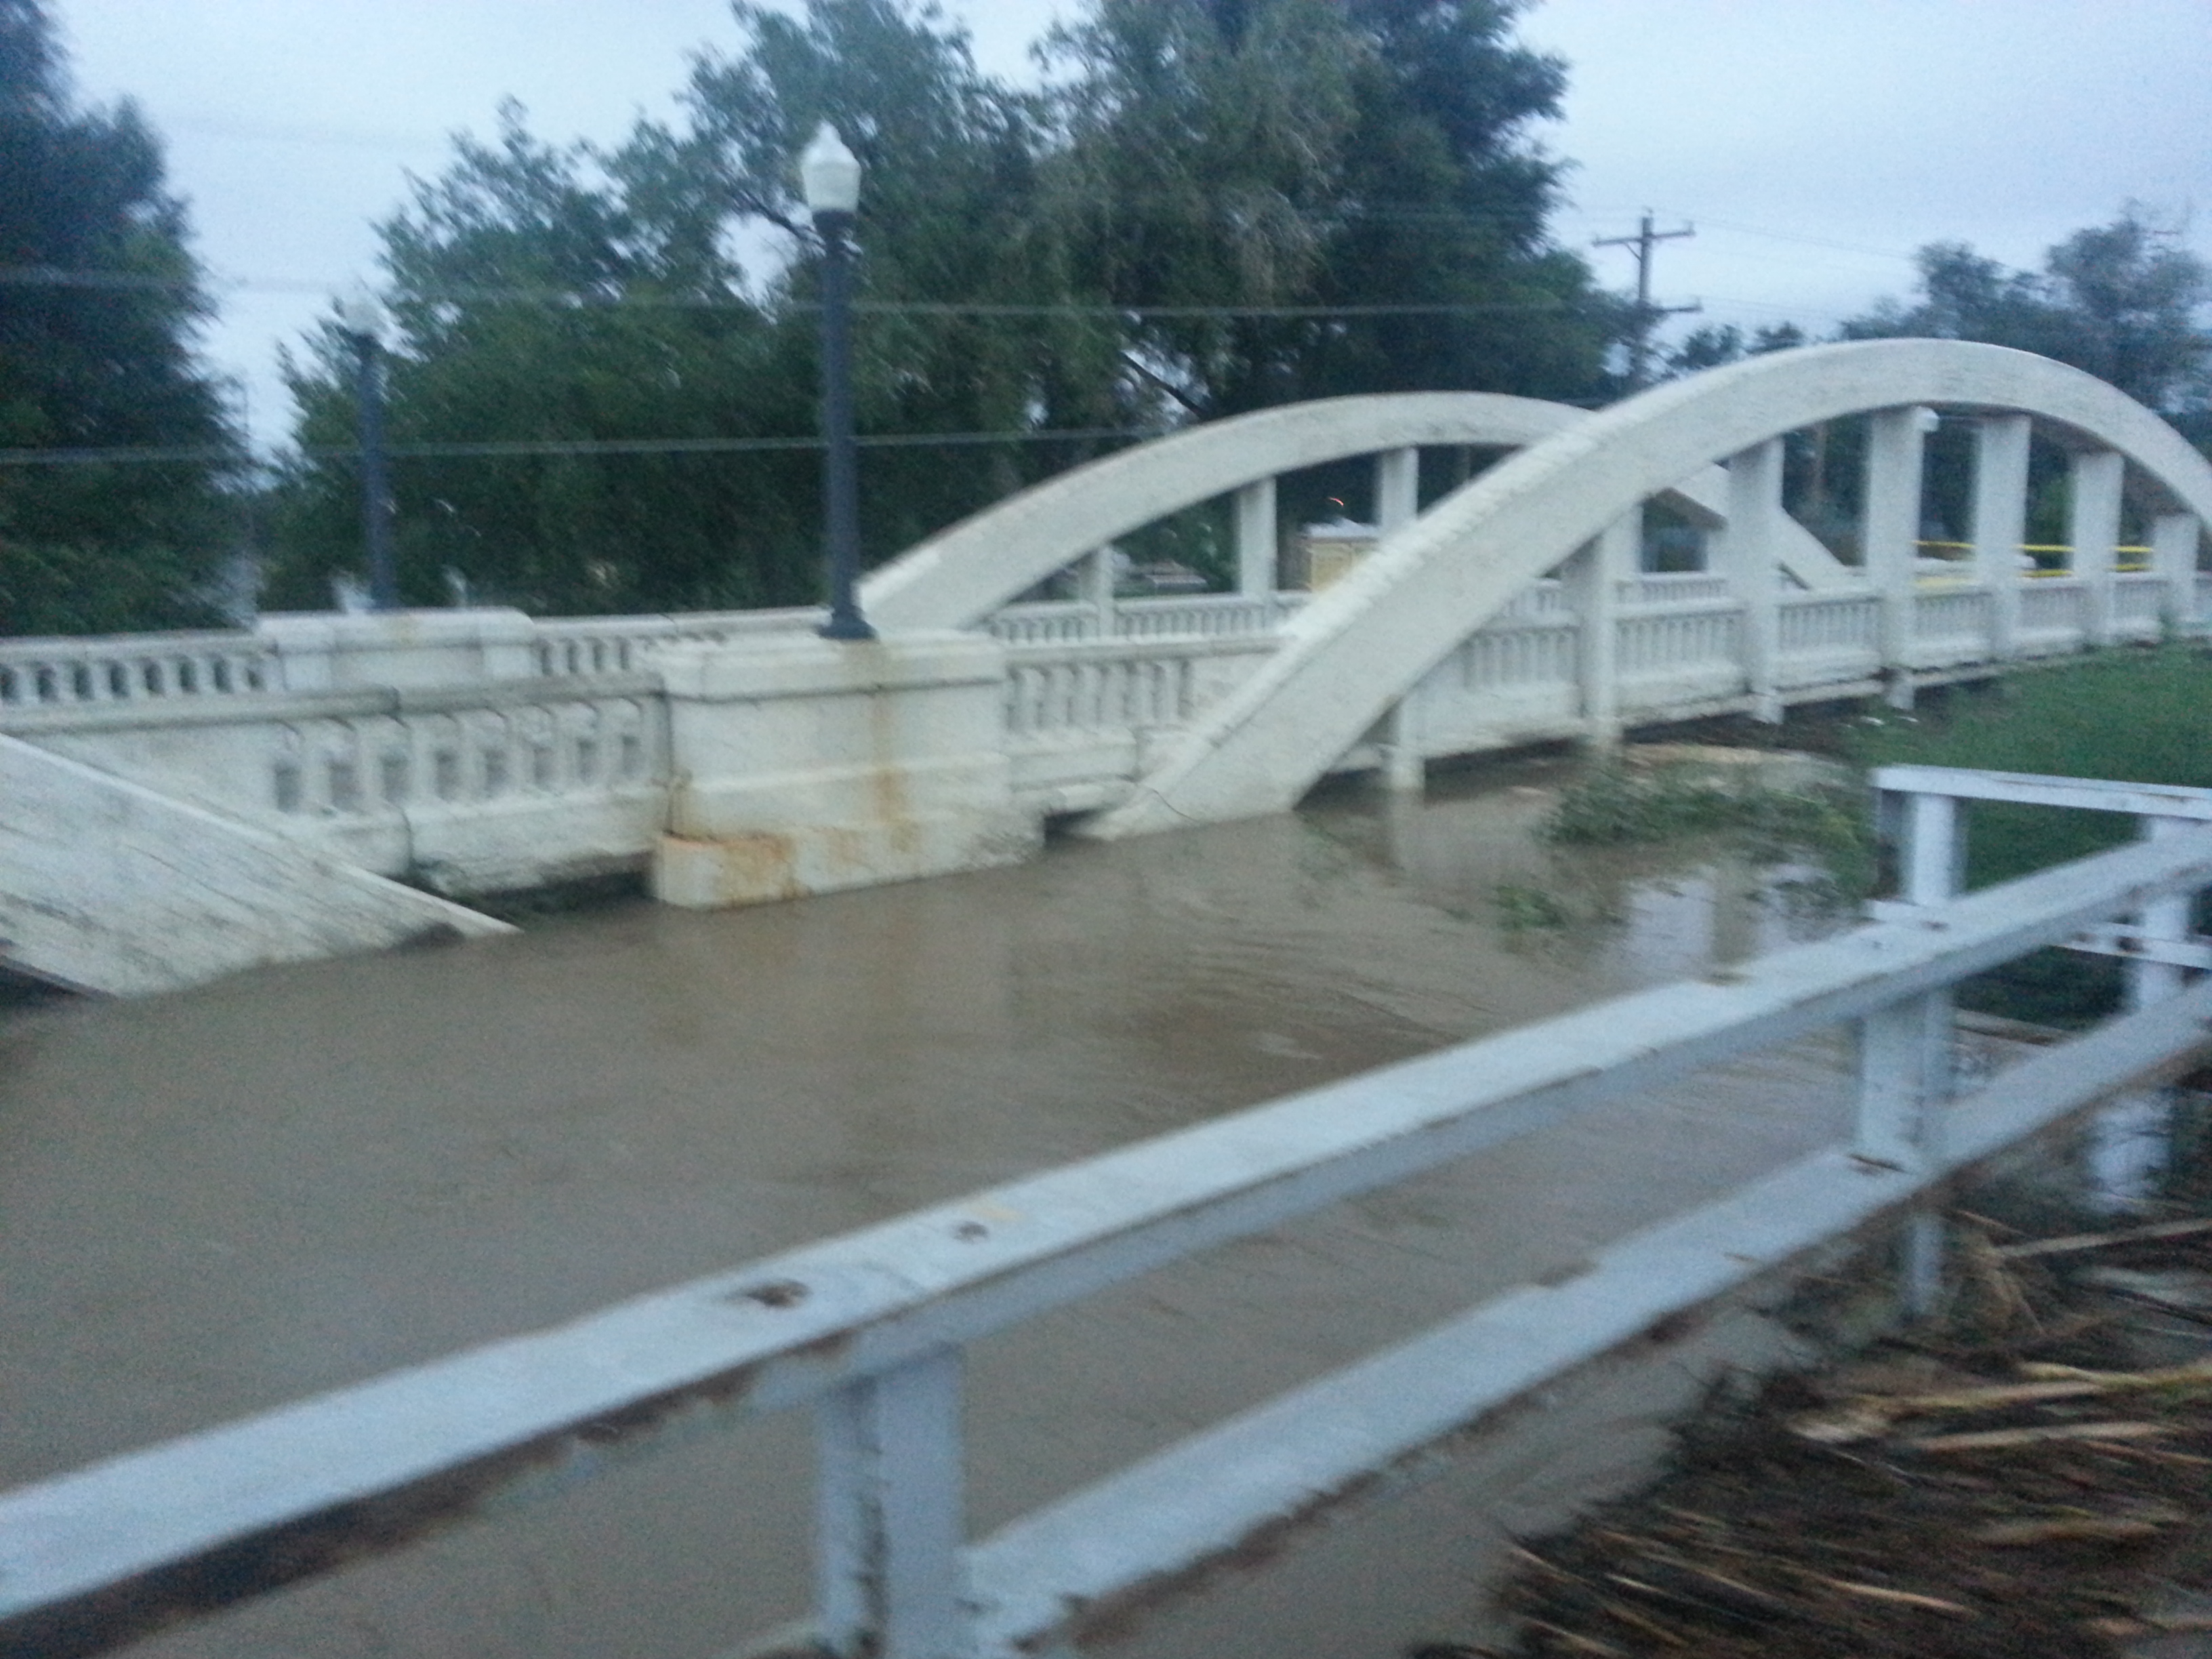 Water up to bridge decks